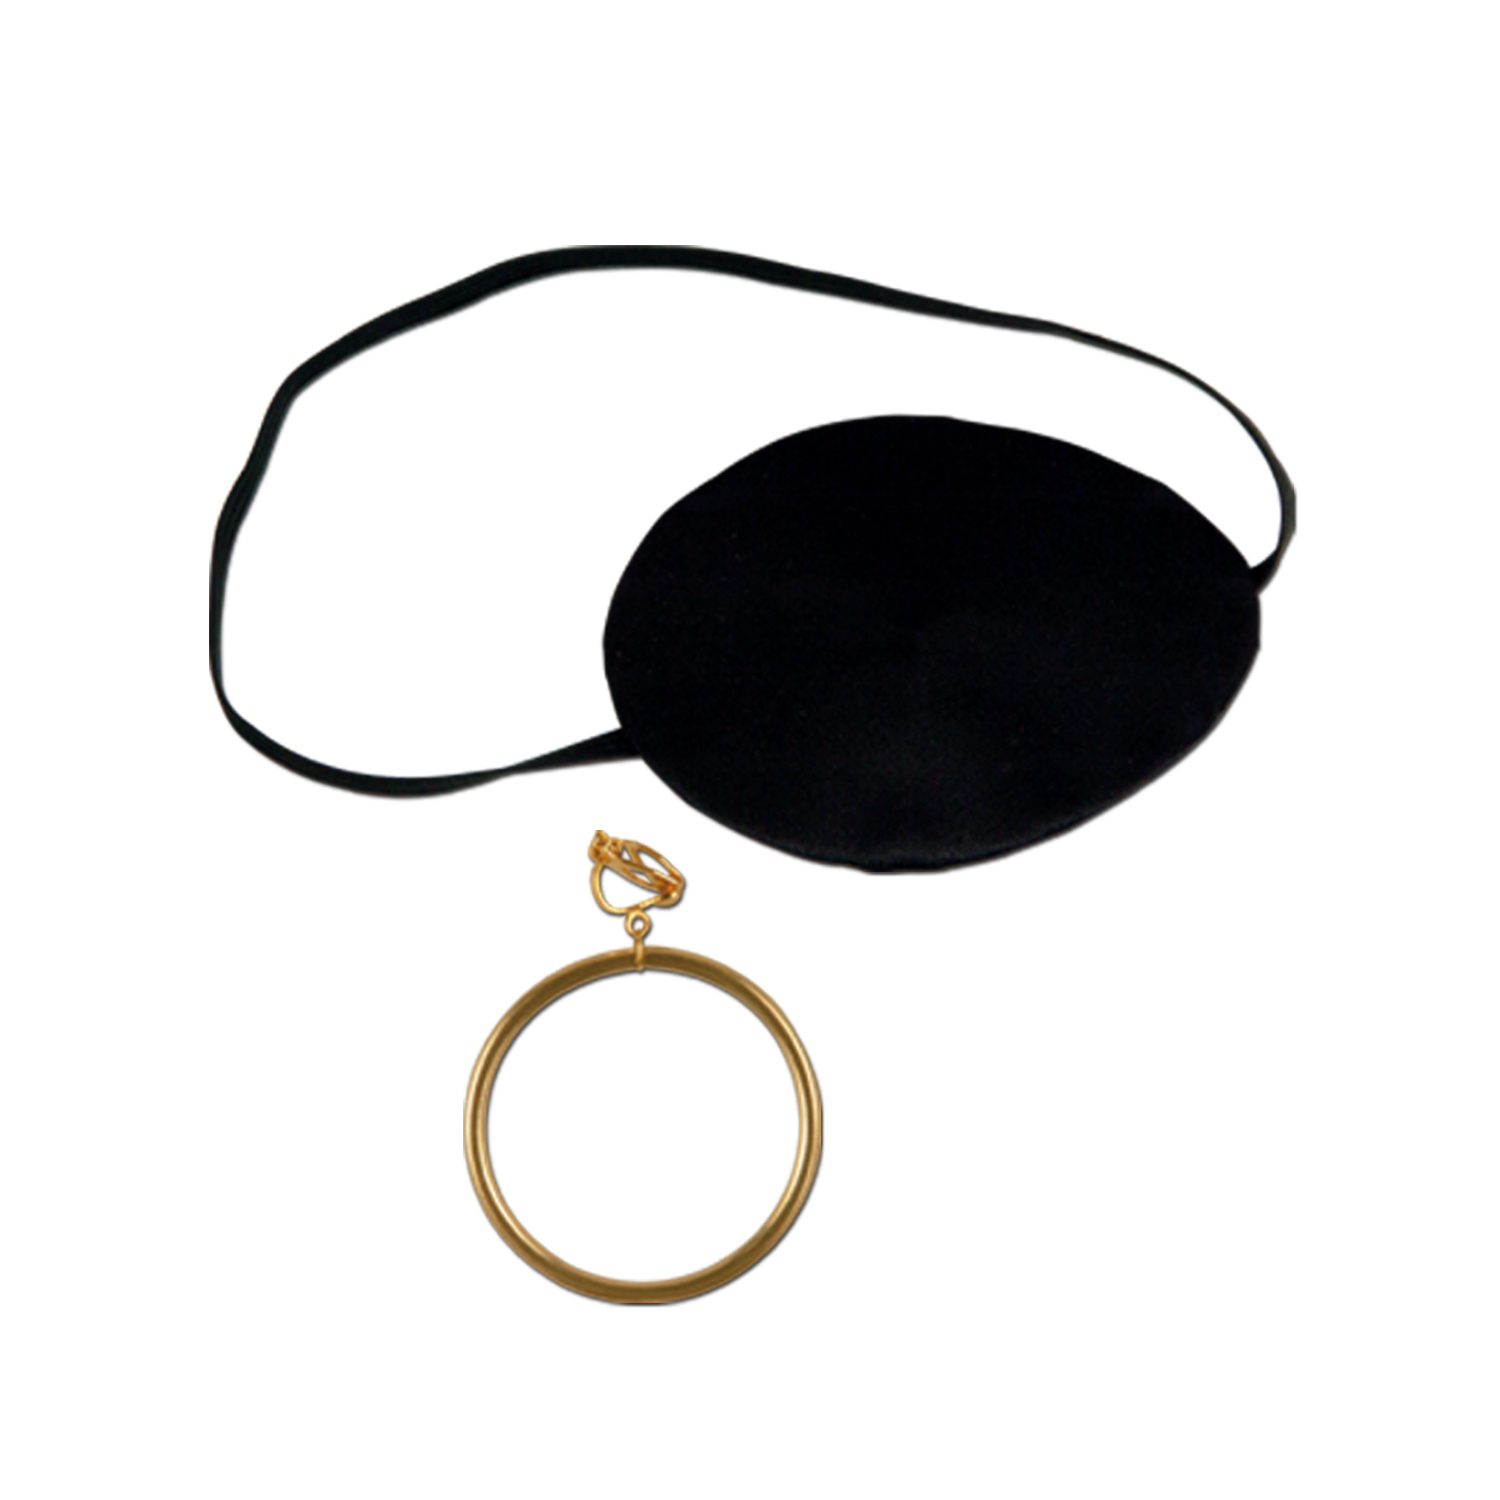 Pirate Eye Patch w/Plastic Earring (Pack of 12) Pirate Eye Patch with Plastic Earring, party favor, pirate, new years eve, halloween, wholesale, inexpensive, bulk